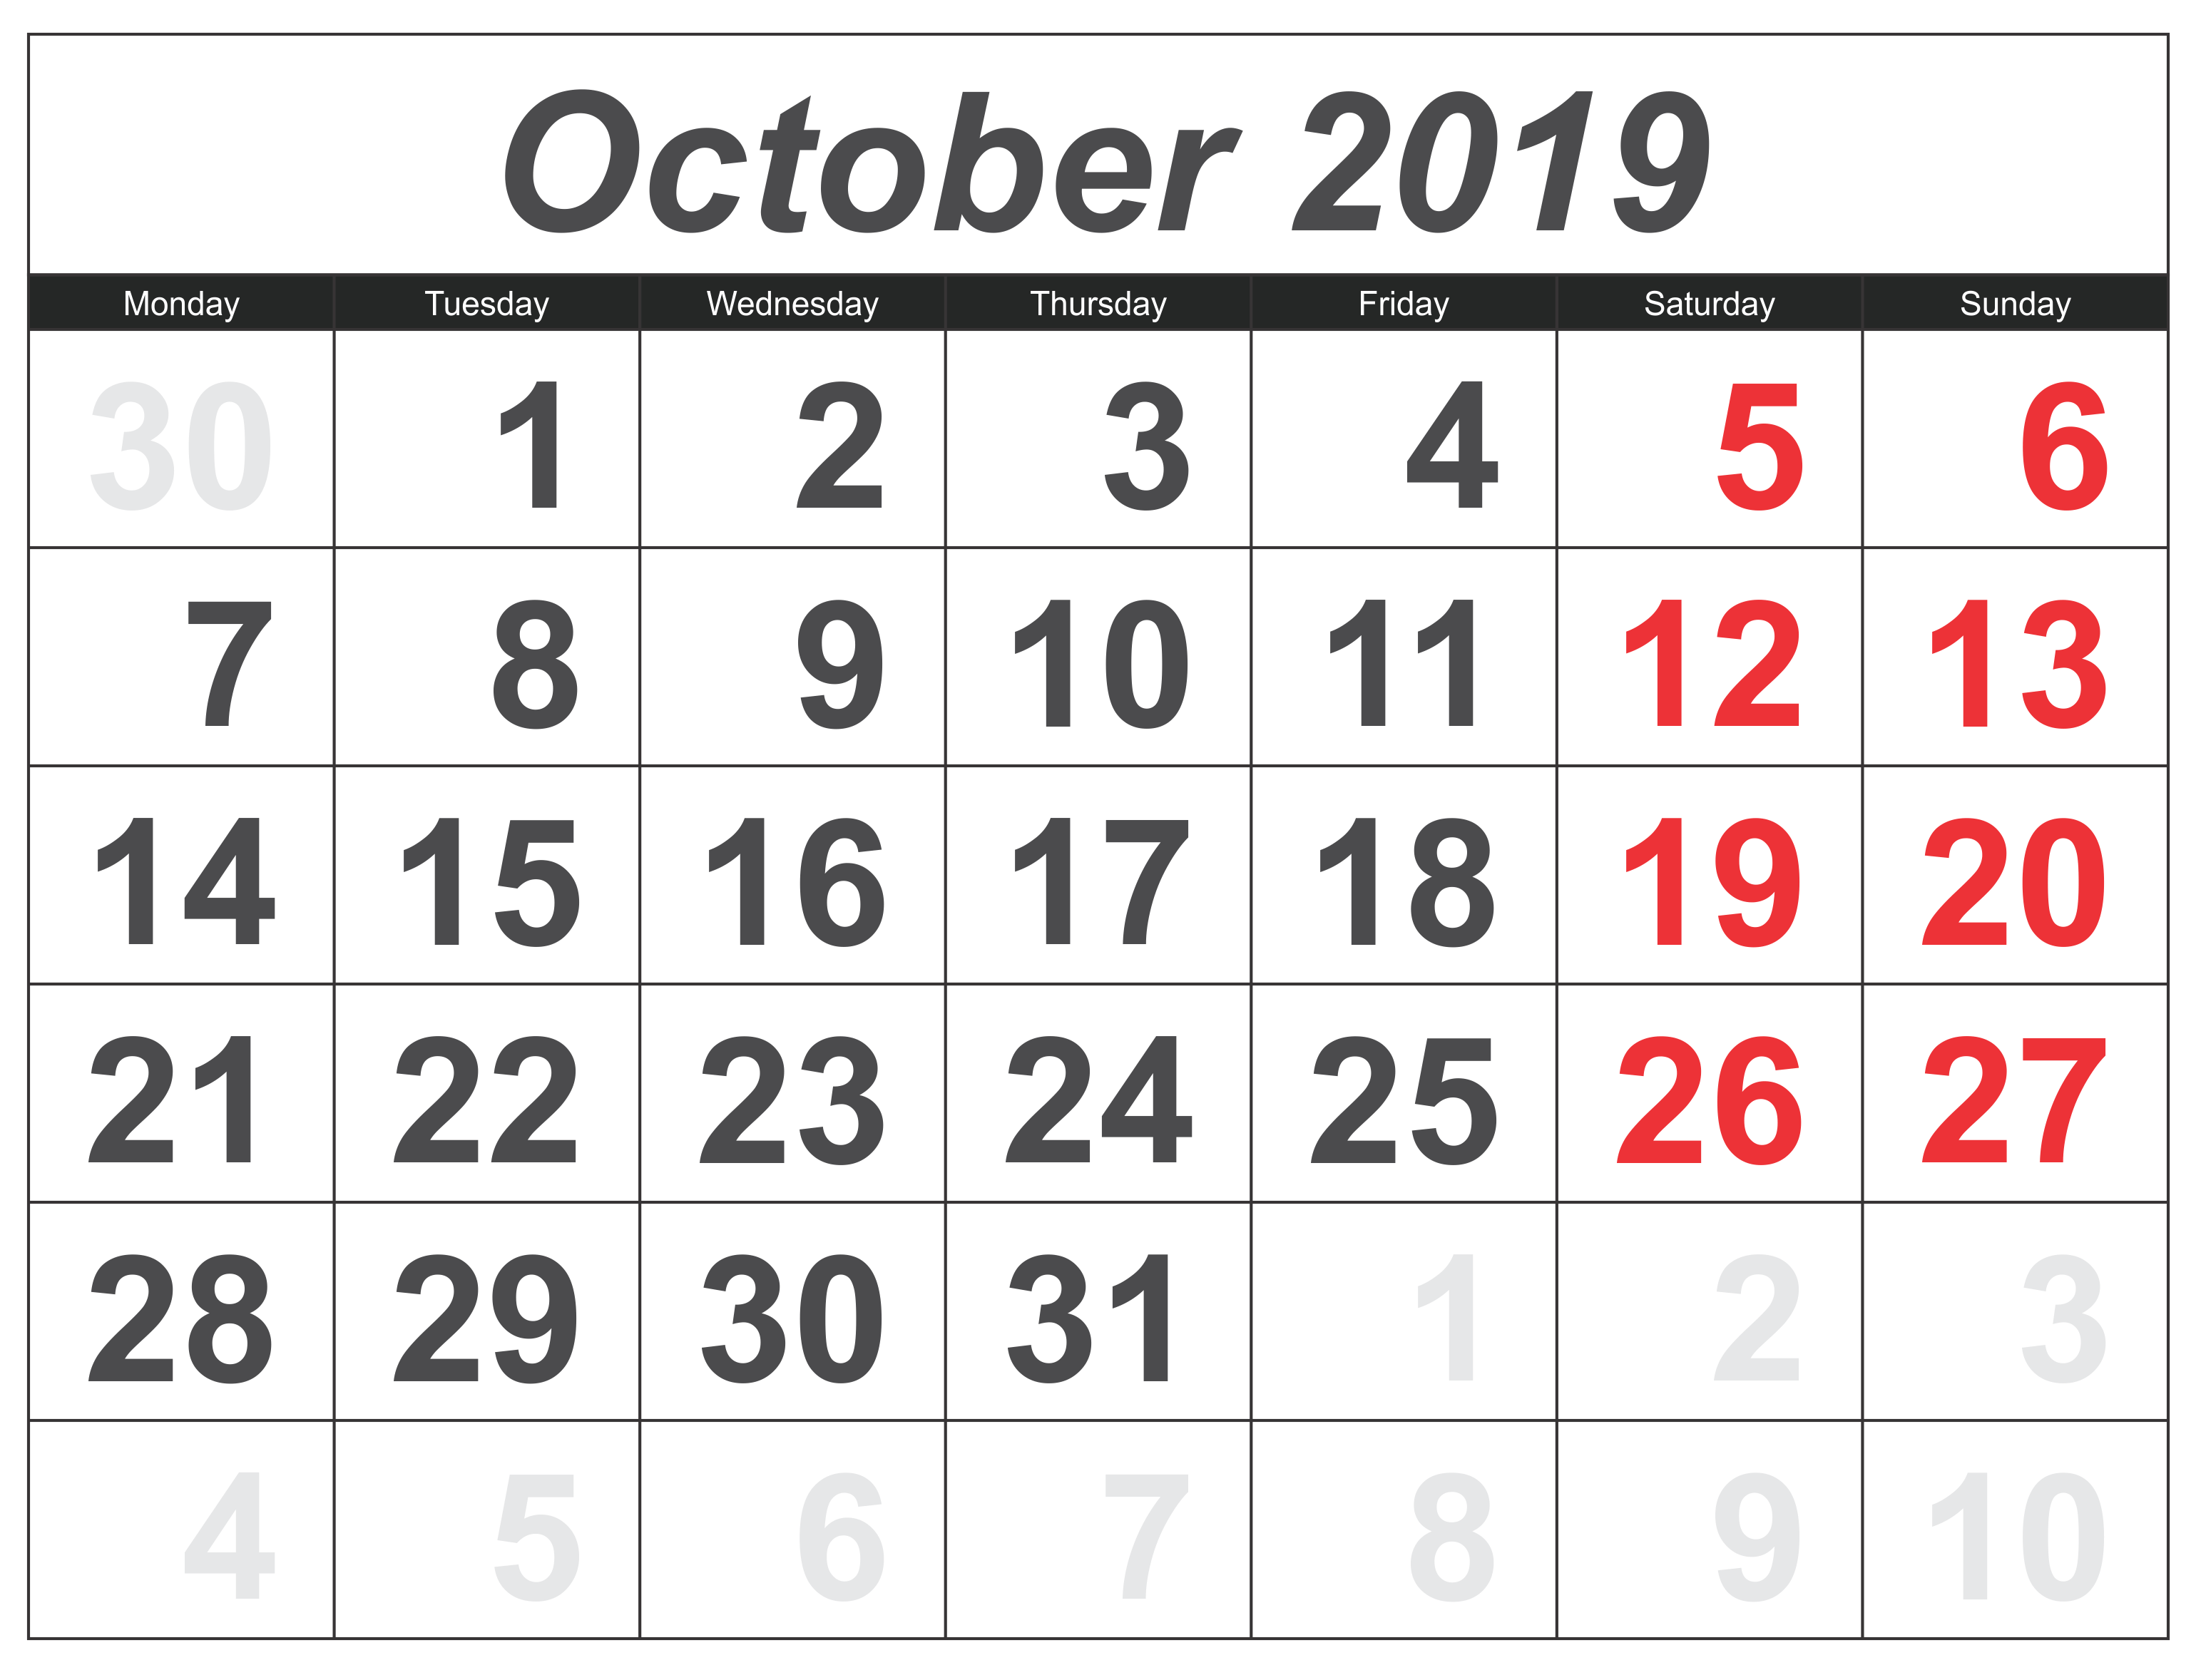 October 2019 Calendar UK Public Holidays